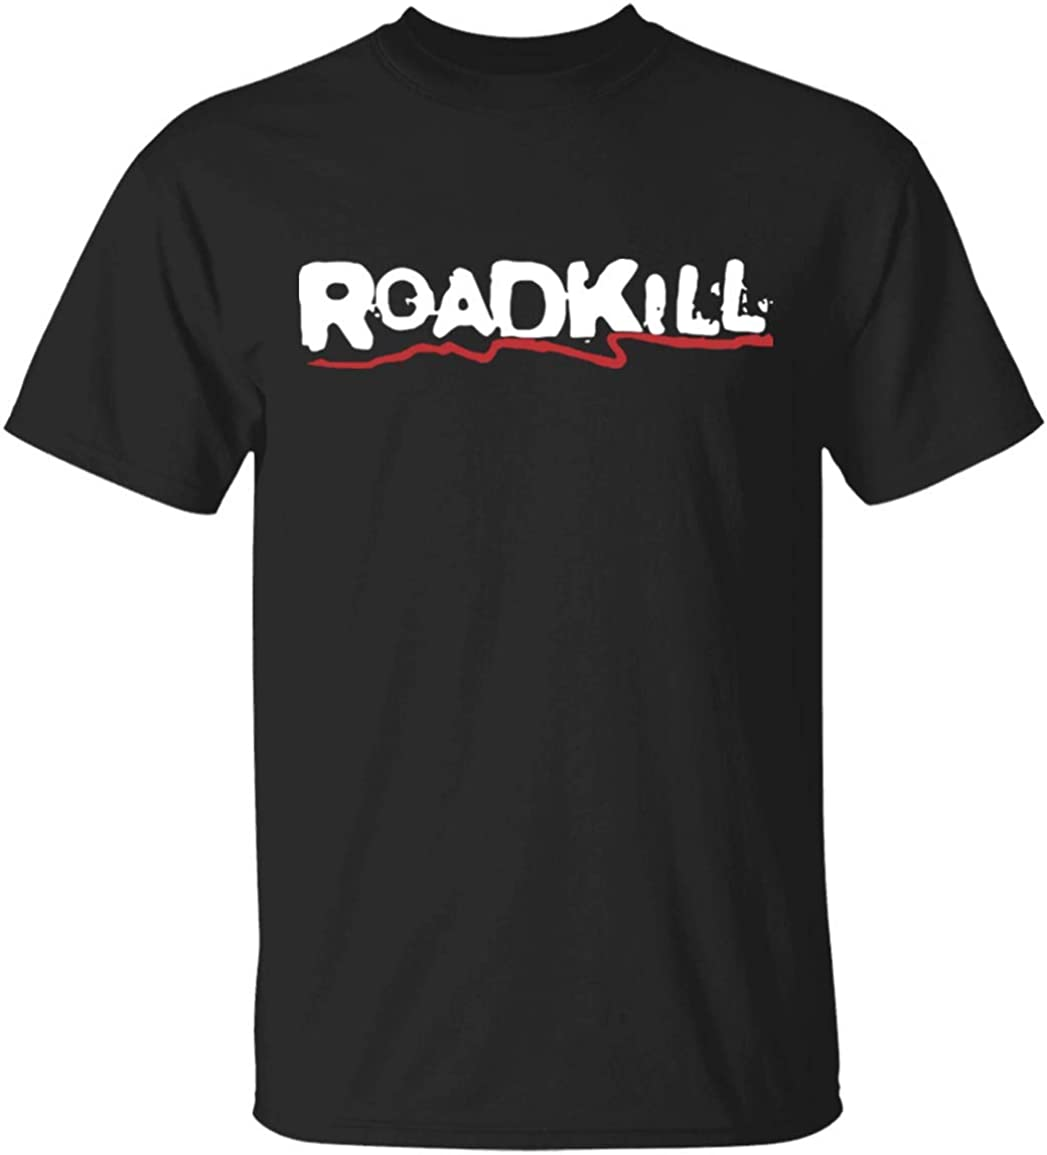 B07XYF6W53 Cool Roadkill Casual Cotton Round Neck Man T Shirts Retro Classic 90s Nowhere Man T-Shirt 512BZSGIHJEL